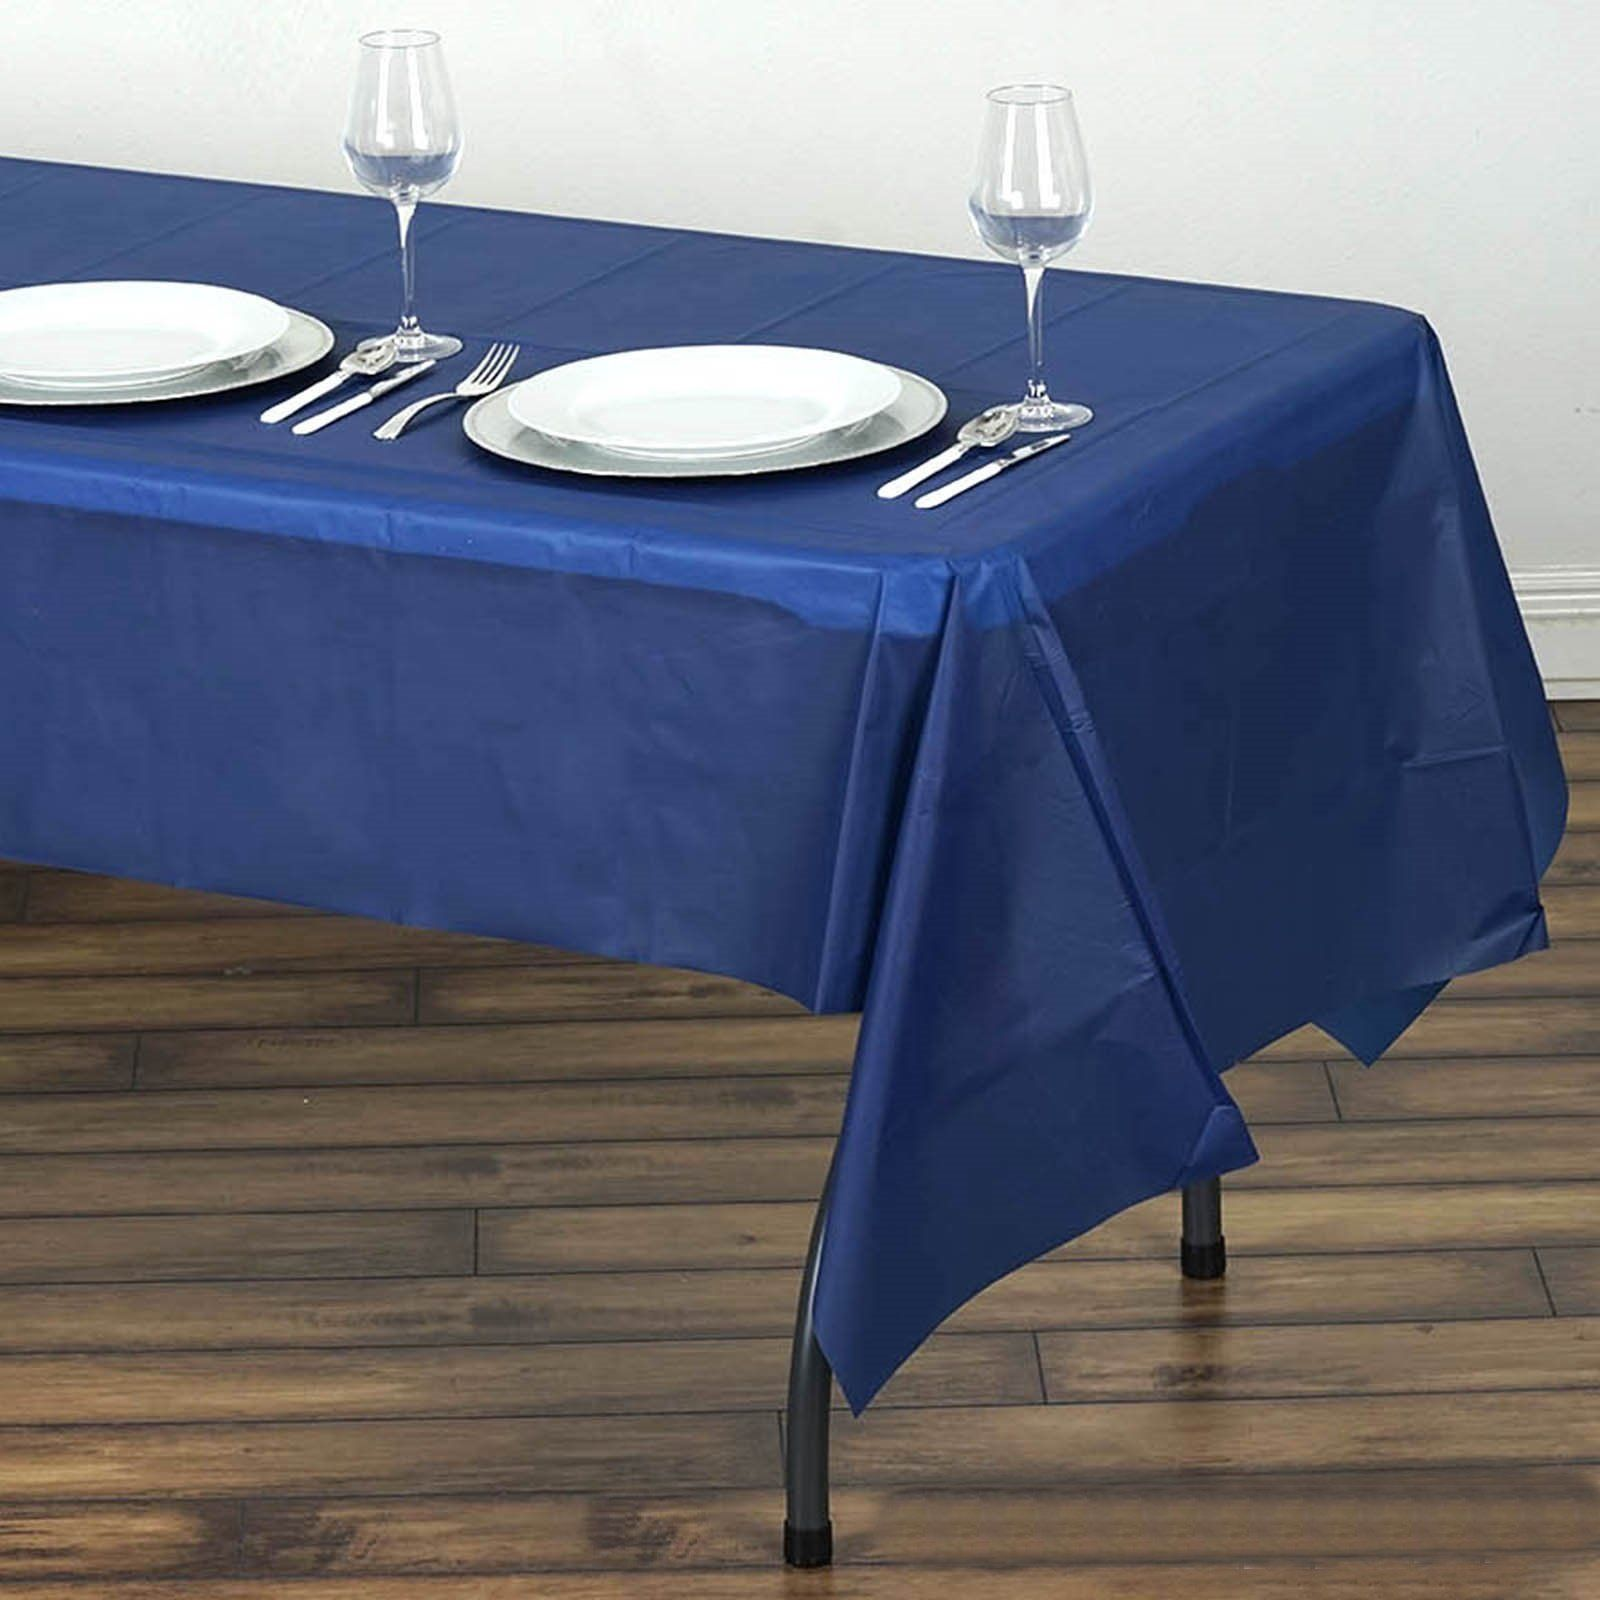 54 X 108 Navy Blue 10 Mil Thick Waterproof Tablecloth Pvc Rectangle Disposable Tablecloth In 2020 Plastic Table Covers Plastic Tables Affordable Table